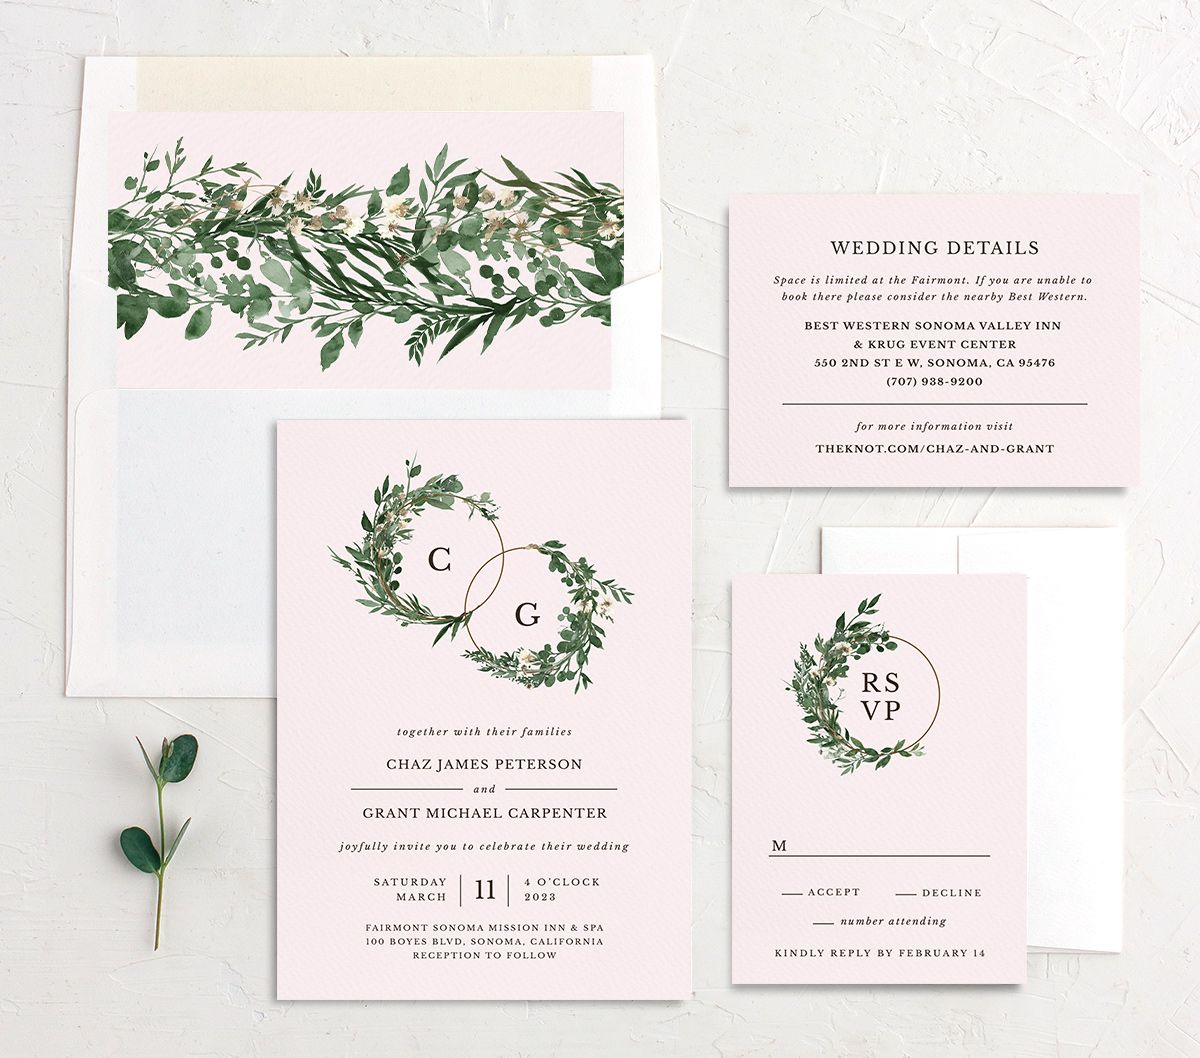 Leafy Hoops wedding stationery suite in PNK